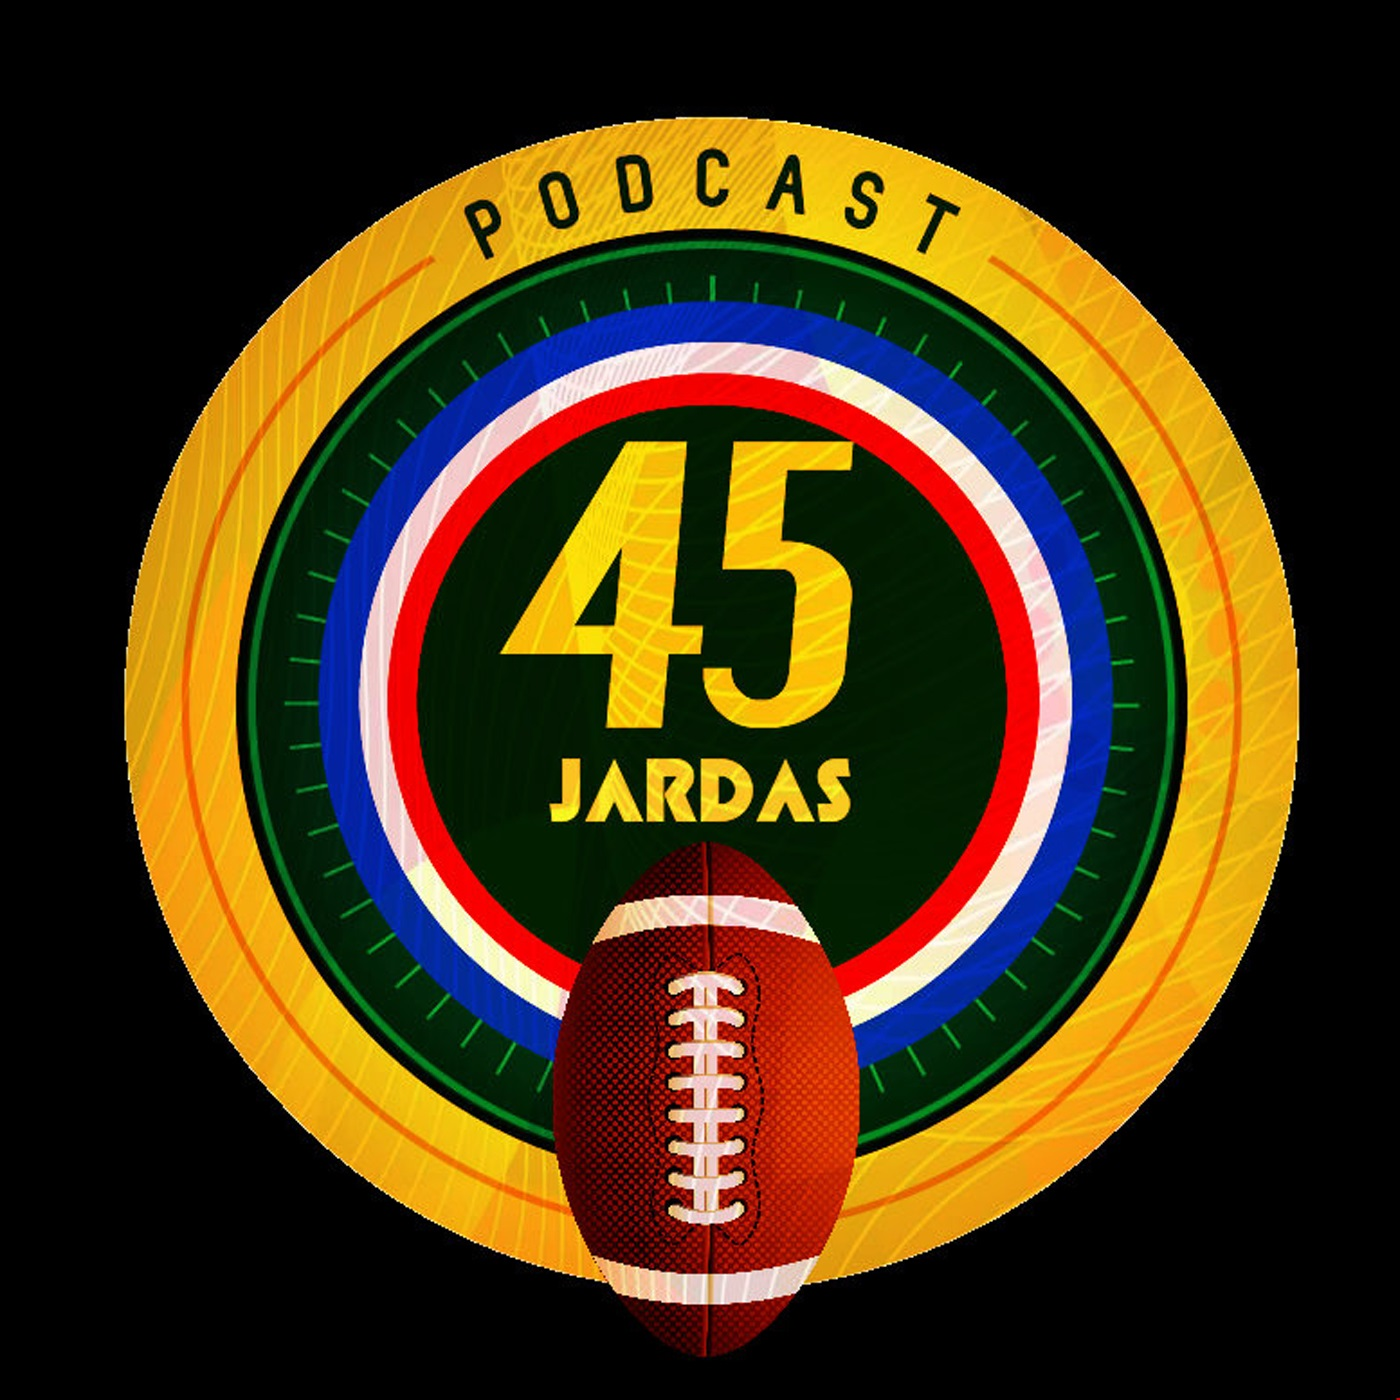 Podcast 45 Jardas